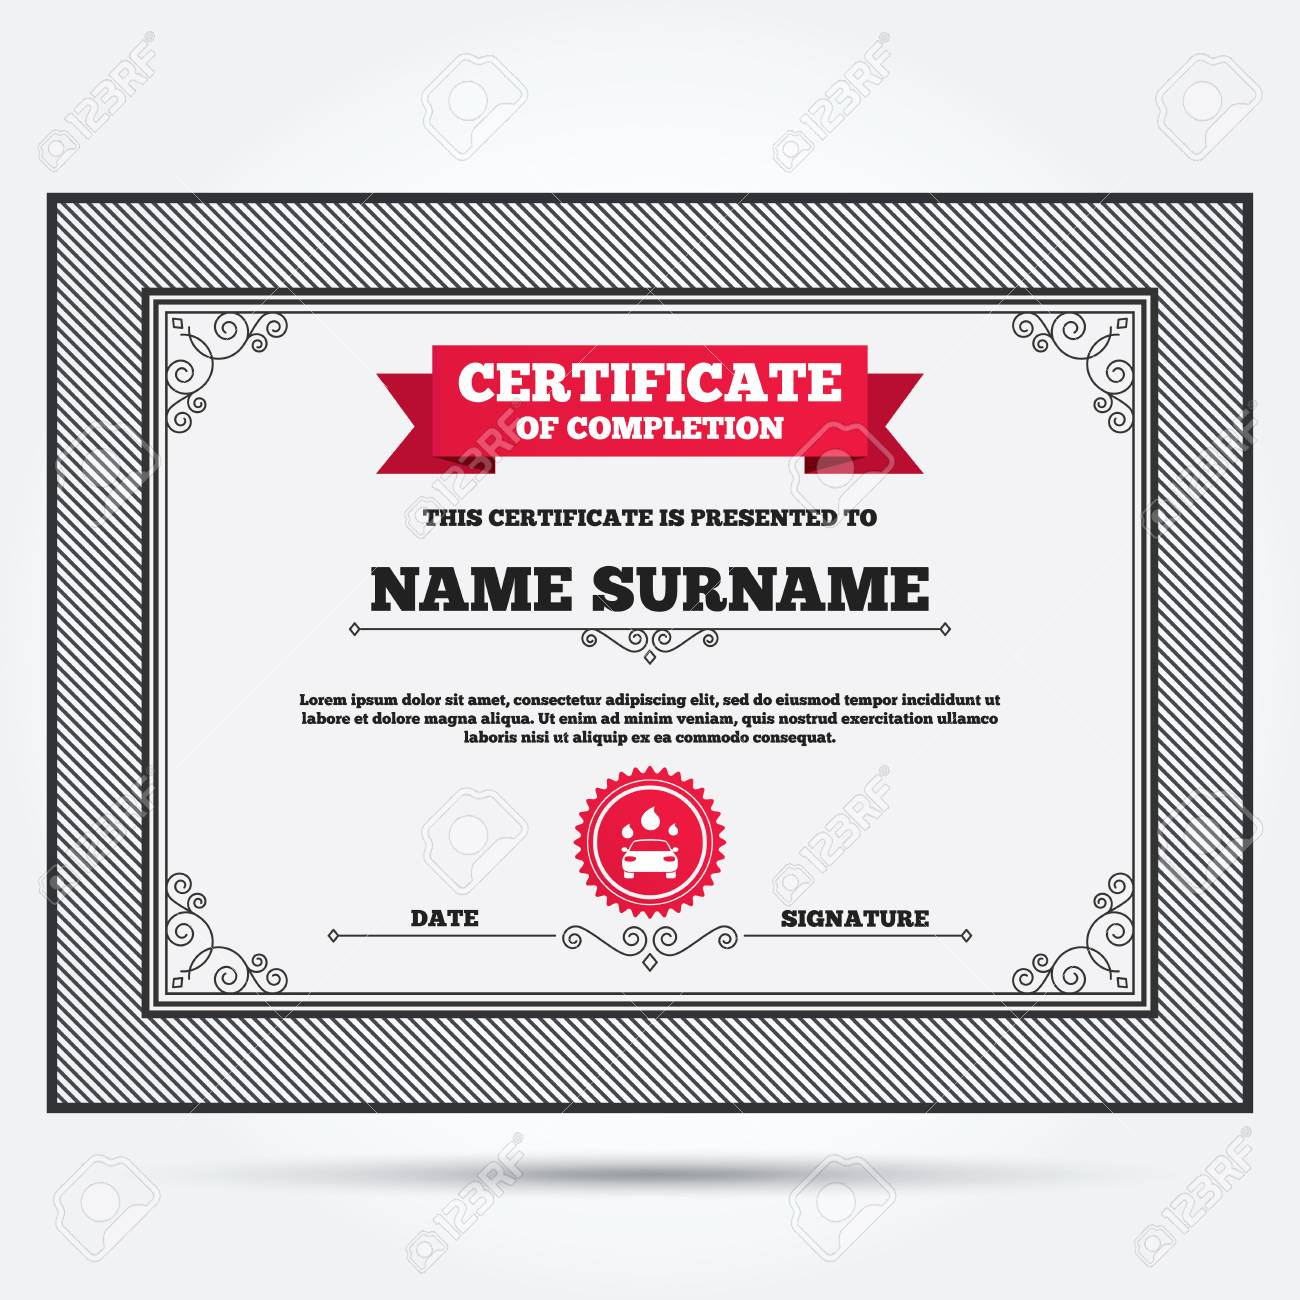 Certificate Of Completion Car Wash Icon Automated Teller Carwash